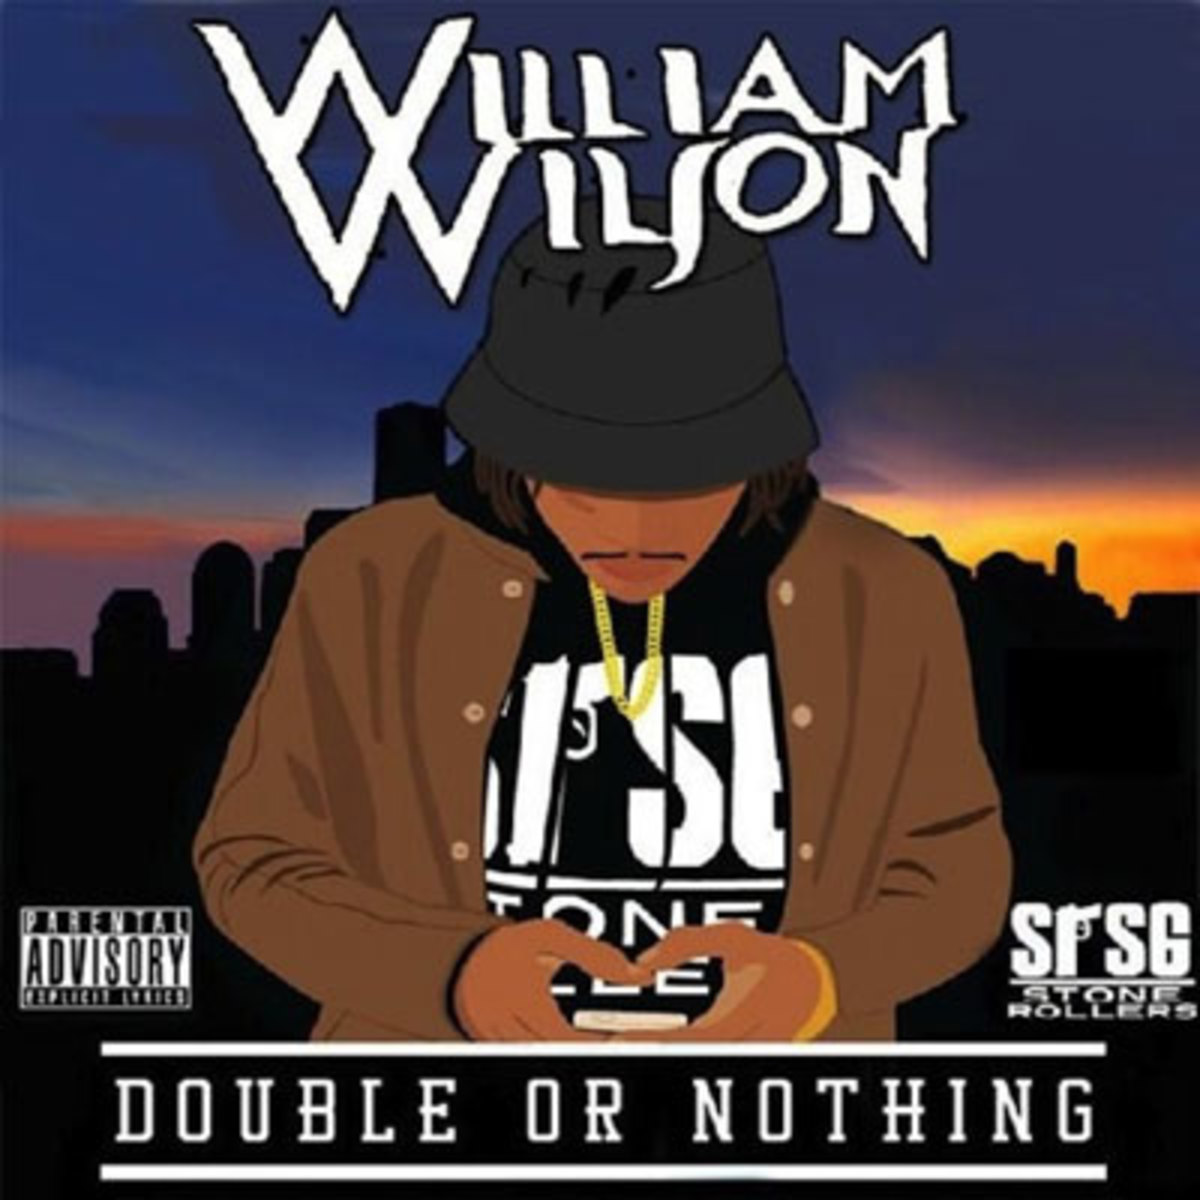 williamwilson-doublenothing.jpg